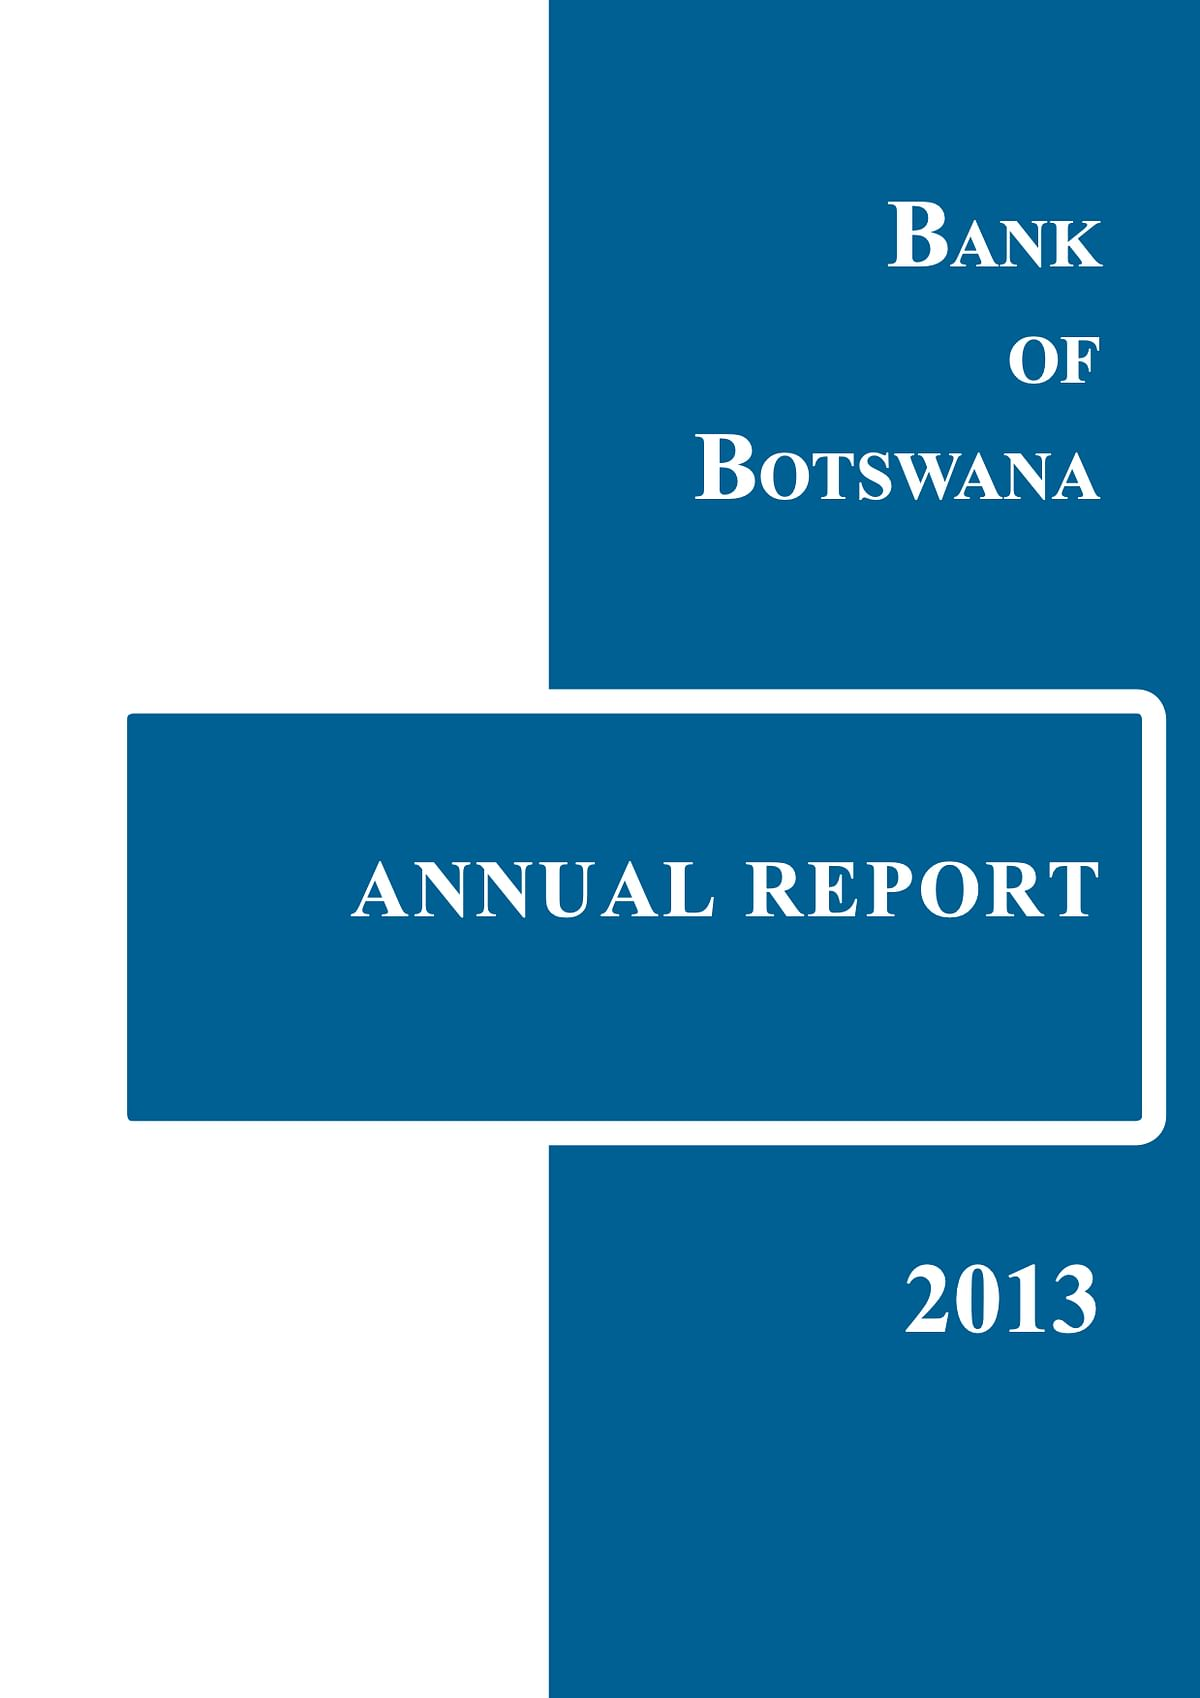 Bank of Botswana Annual Report 2013